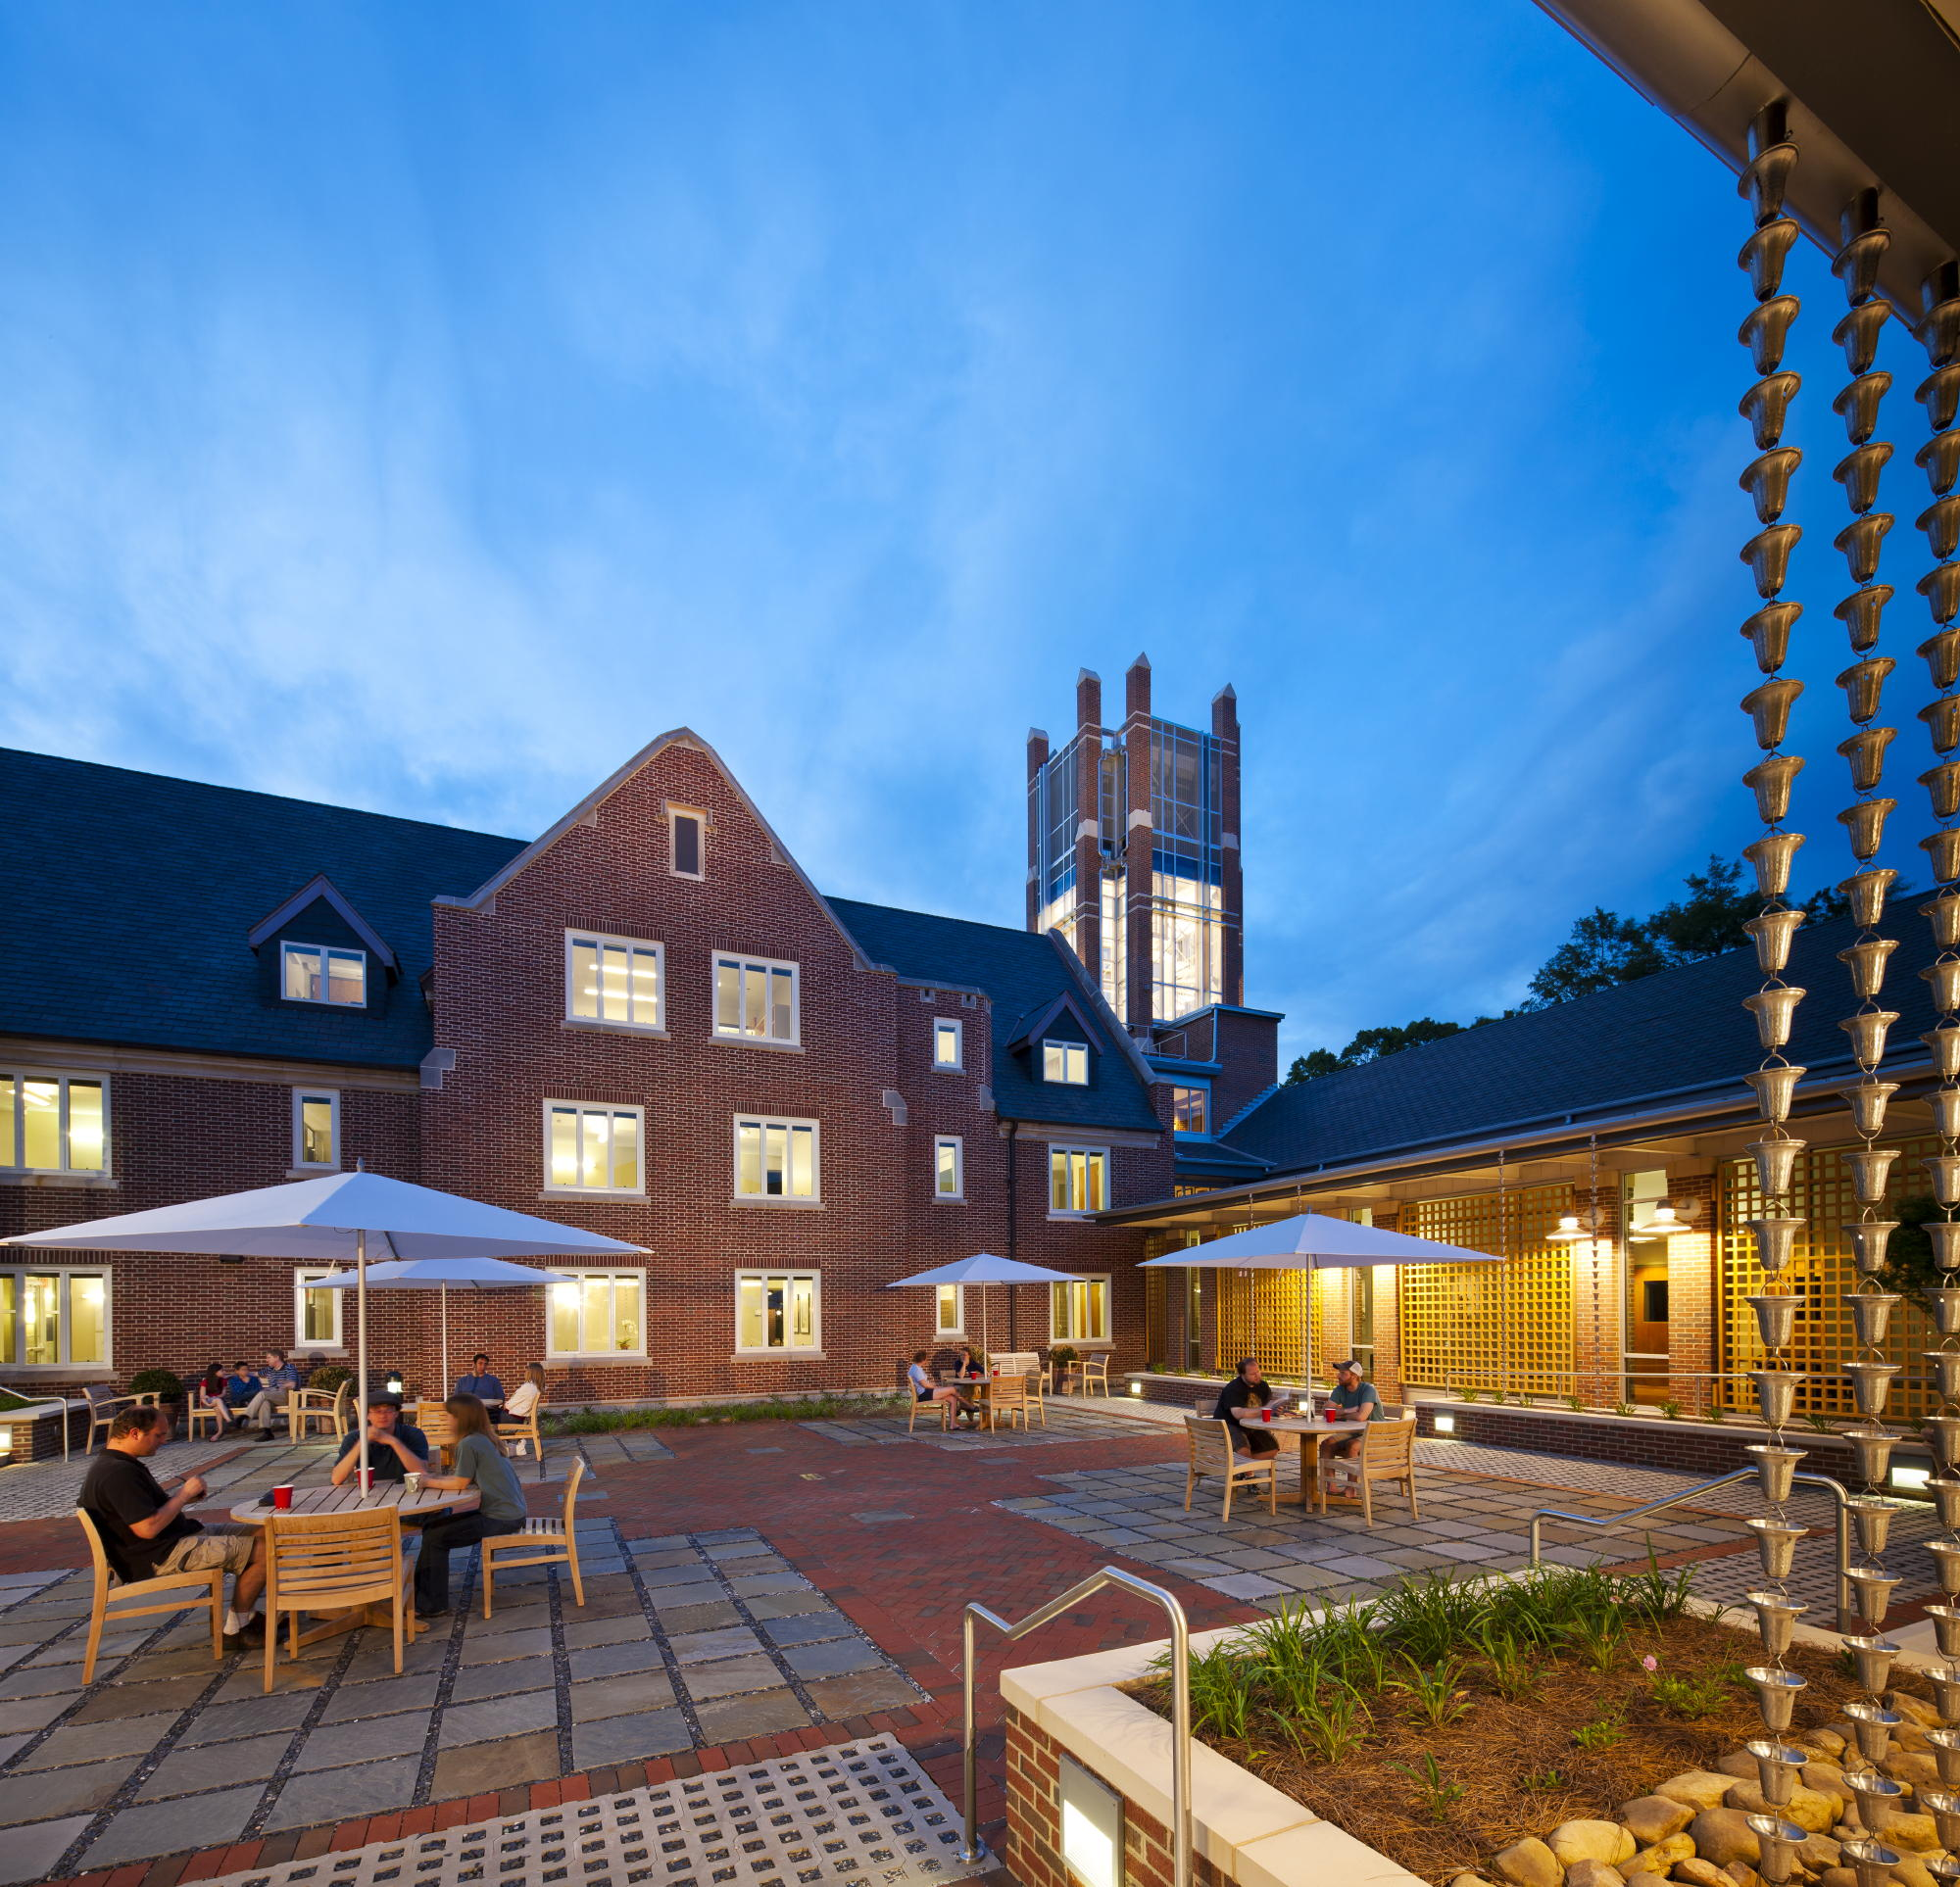 The cloistered courtyard is used as an outdoor teaching, gathering and event space. c 2012 Jonathan Hillyer / Atlanta